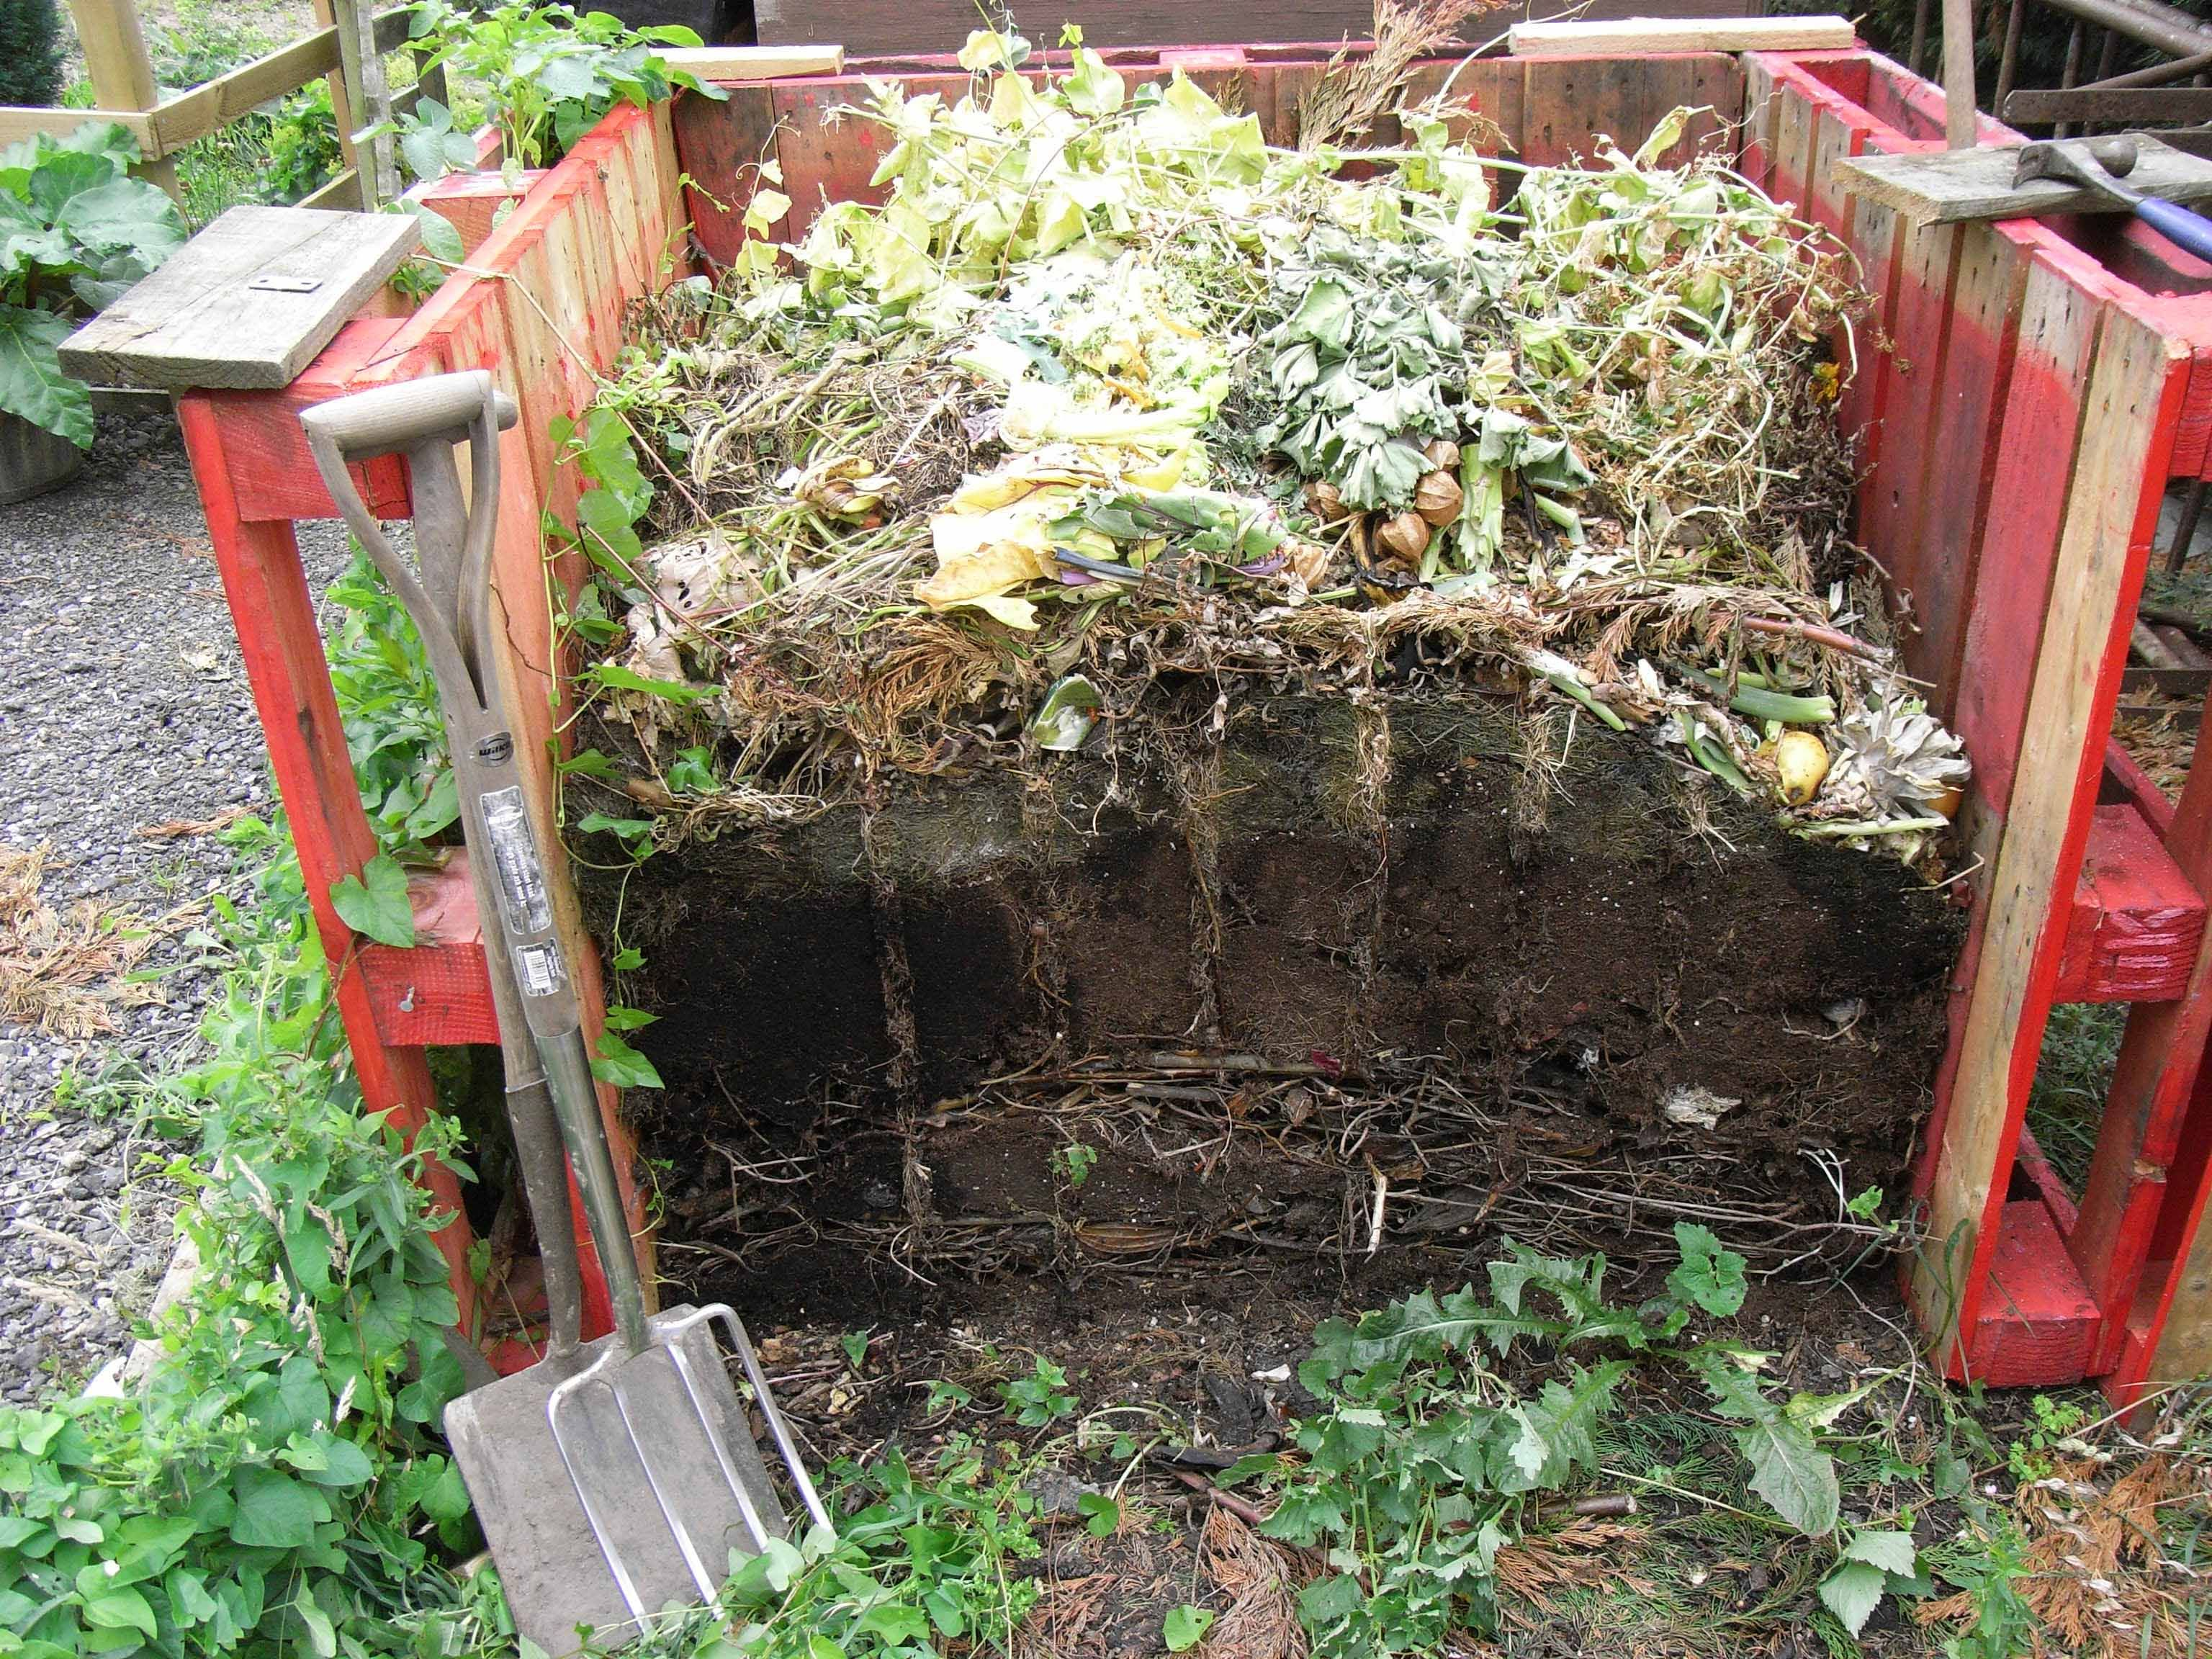 compost pile learning to compost u003eu003e visit us at